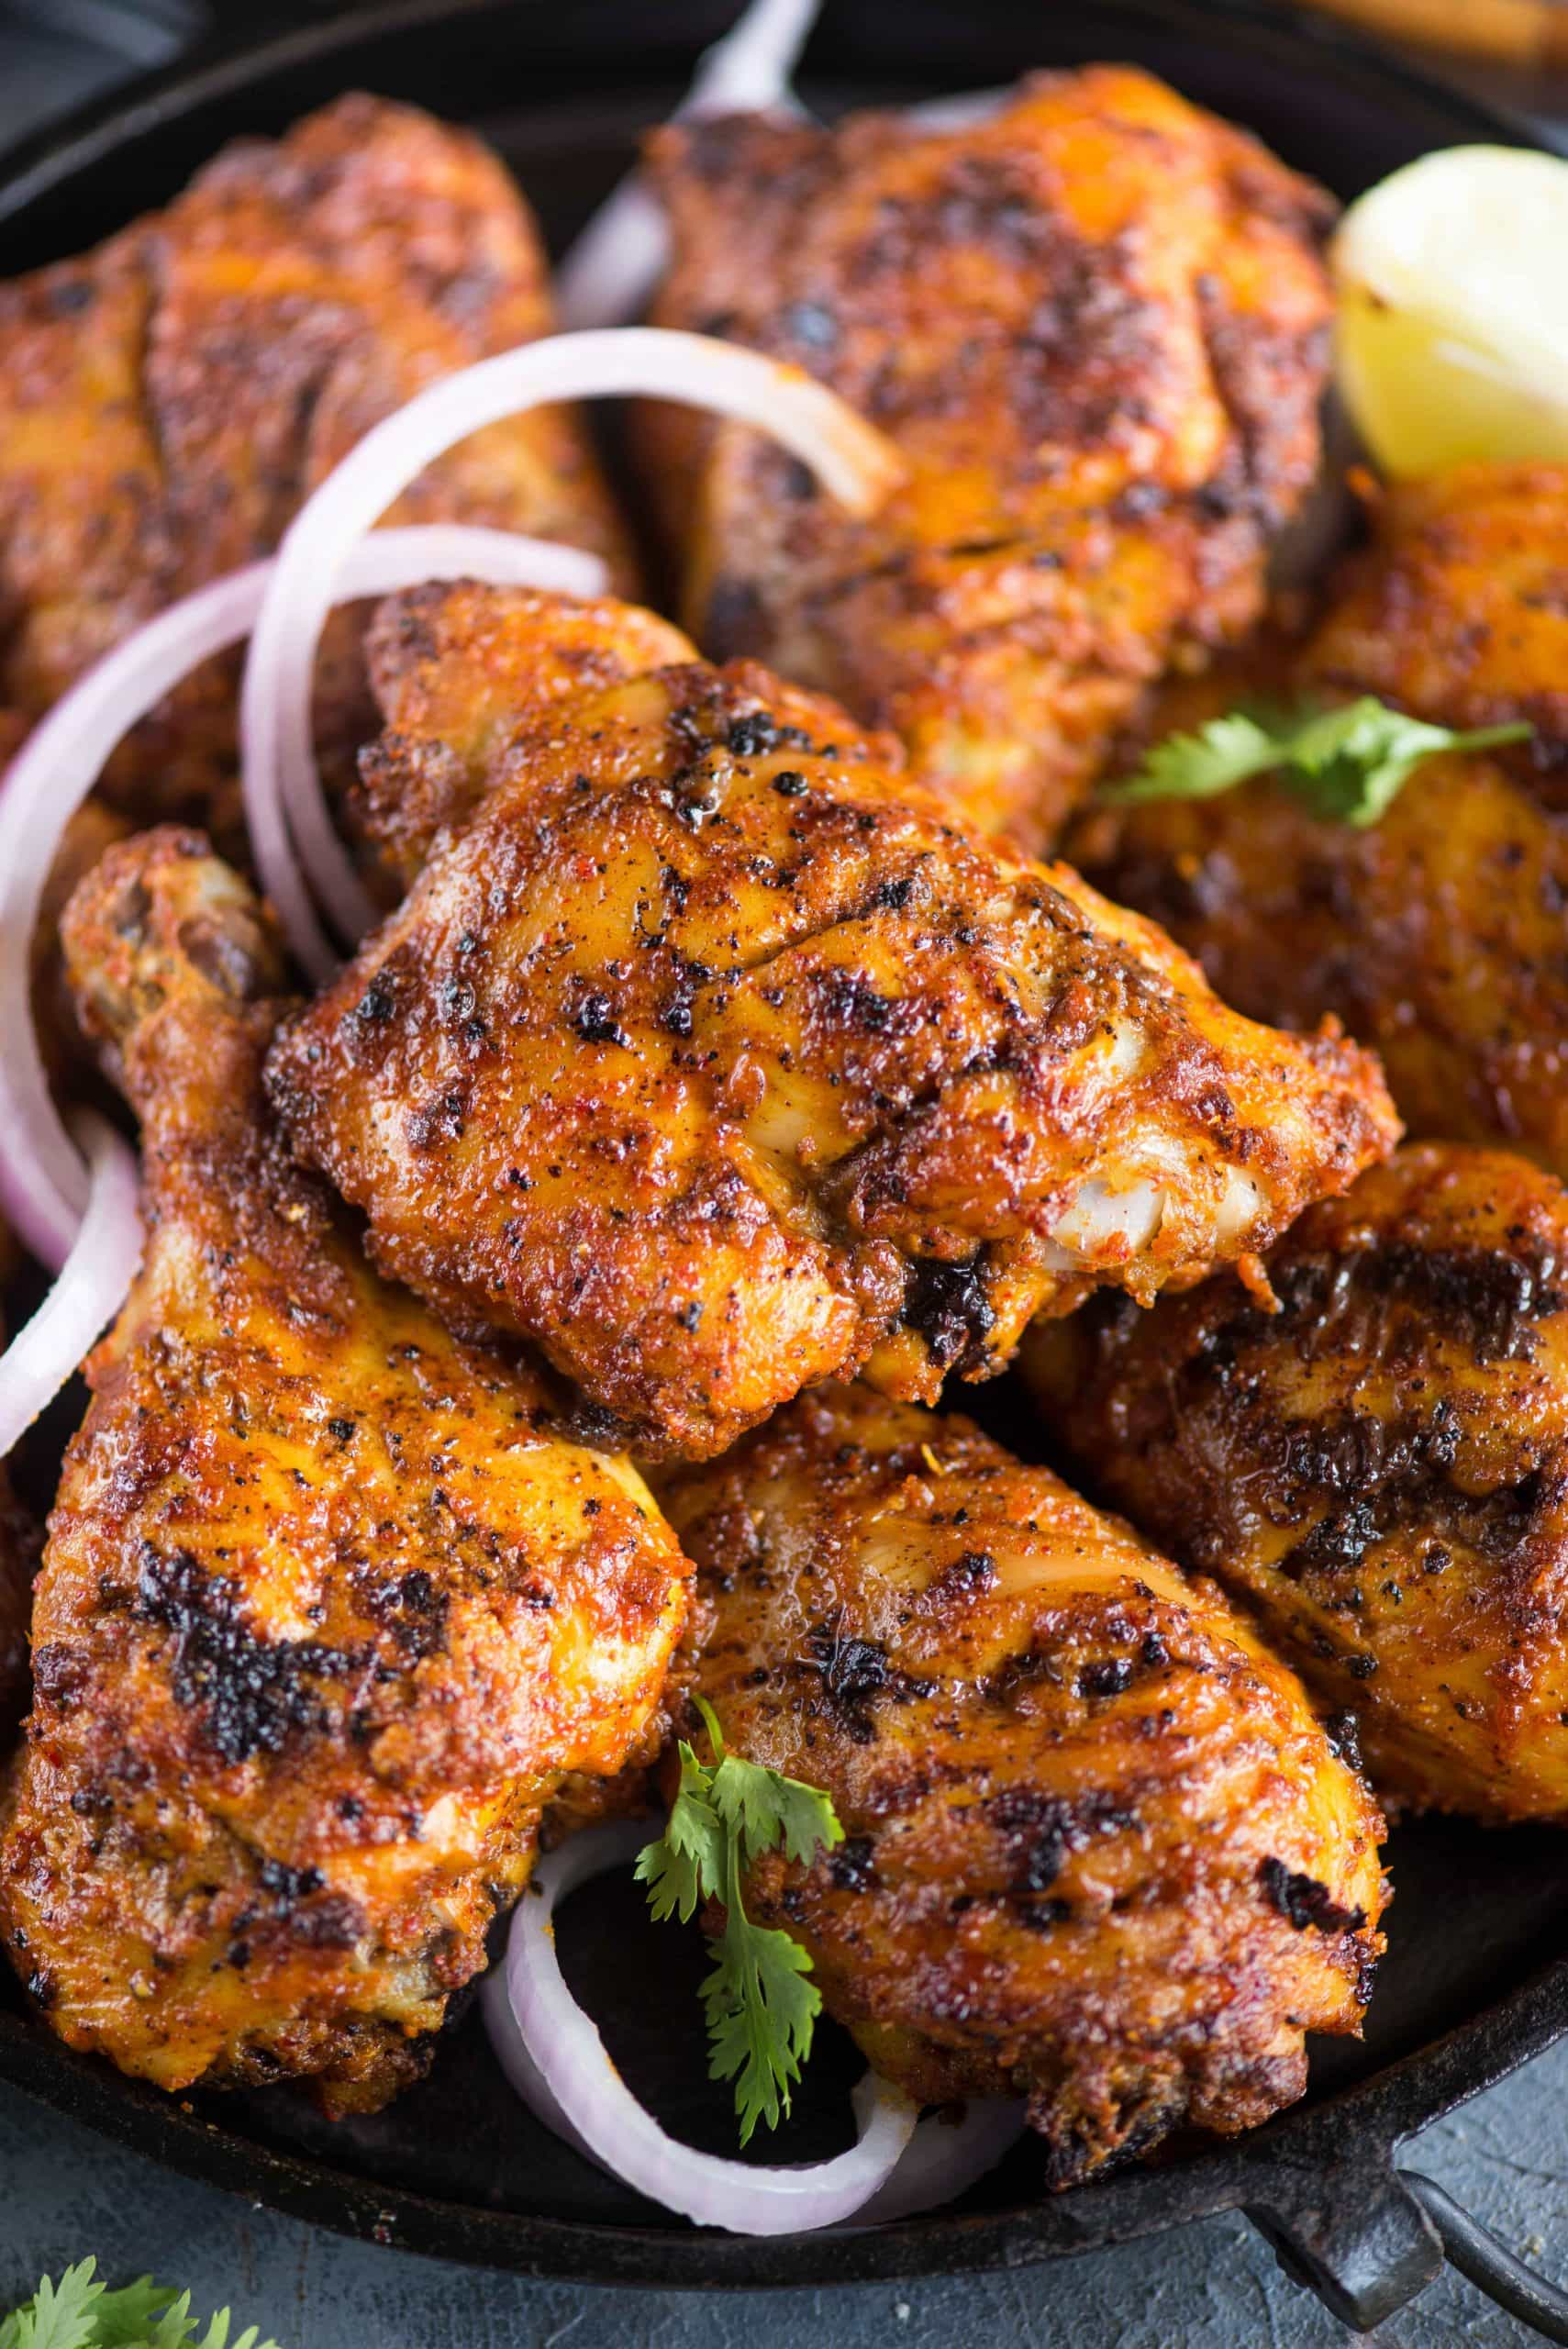 Smoky and juicy Tandoori Chicken gets its flavour from the Yogurt, ginger garlic paste and spice marination. It can be made on the grill, oven or Stovetop.